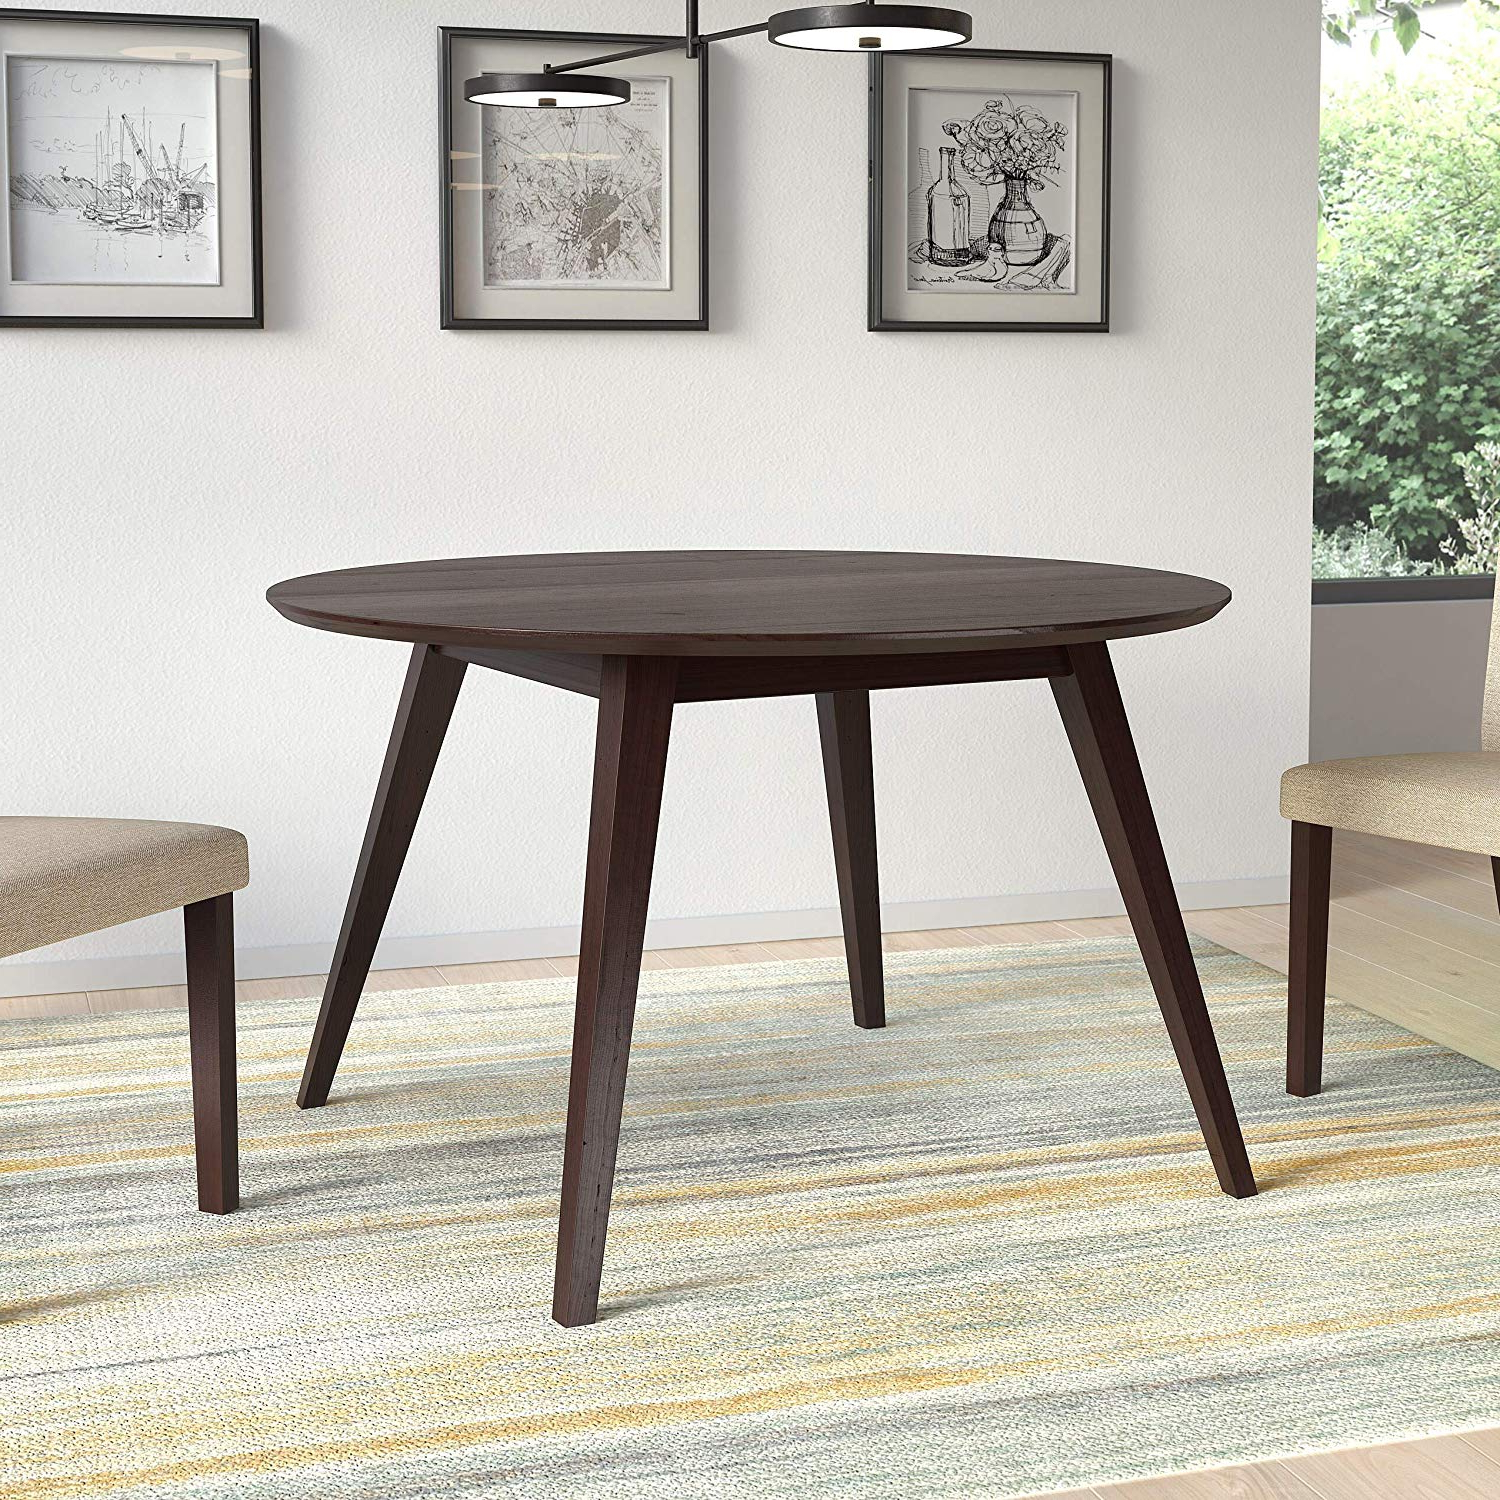 Atwood Transitional Rectangular Dining Tables For Most Popular Amazon – Corliving Atwood Round Dining Table In (View 14 of 25)